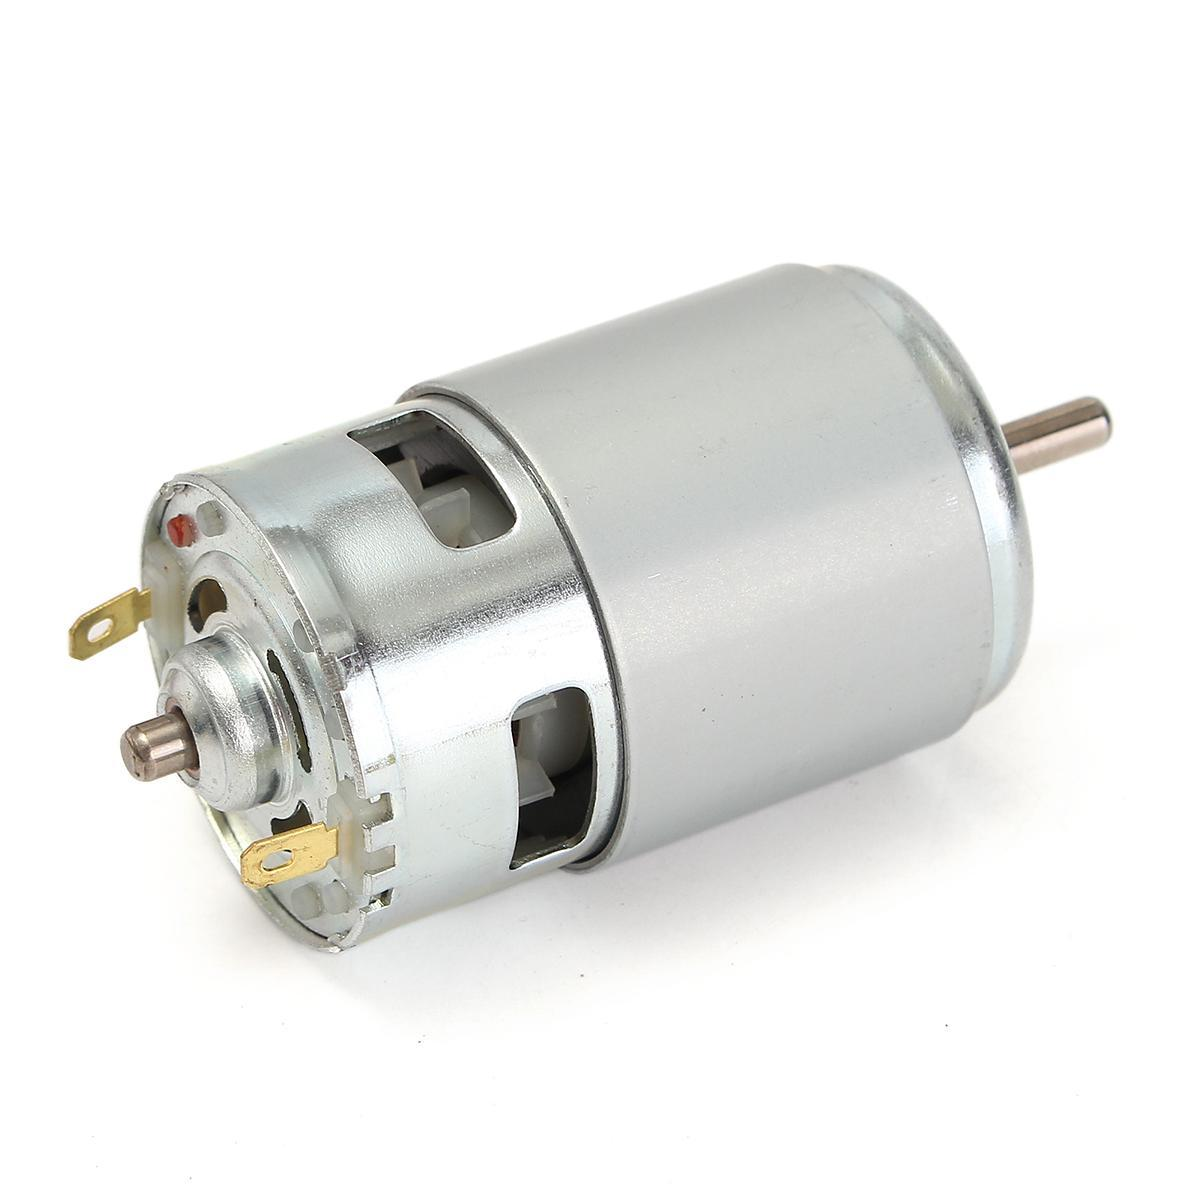 a9b0108b84c 775 DC 12V-24V 3500-9000RPM Motor Ball Bearing Large Torque High Power Low  Noise